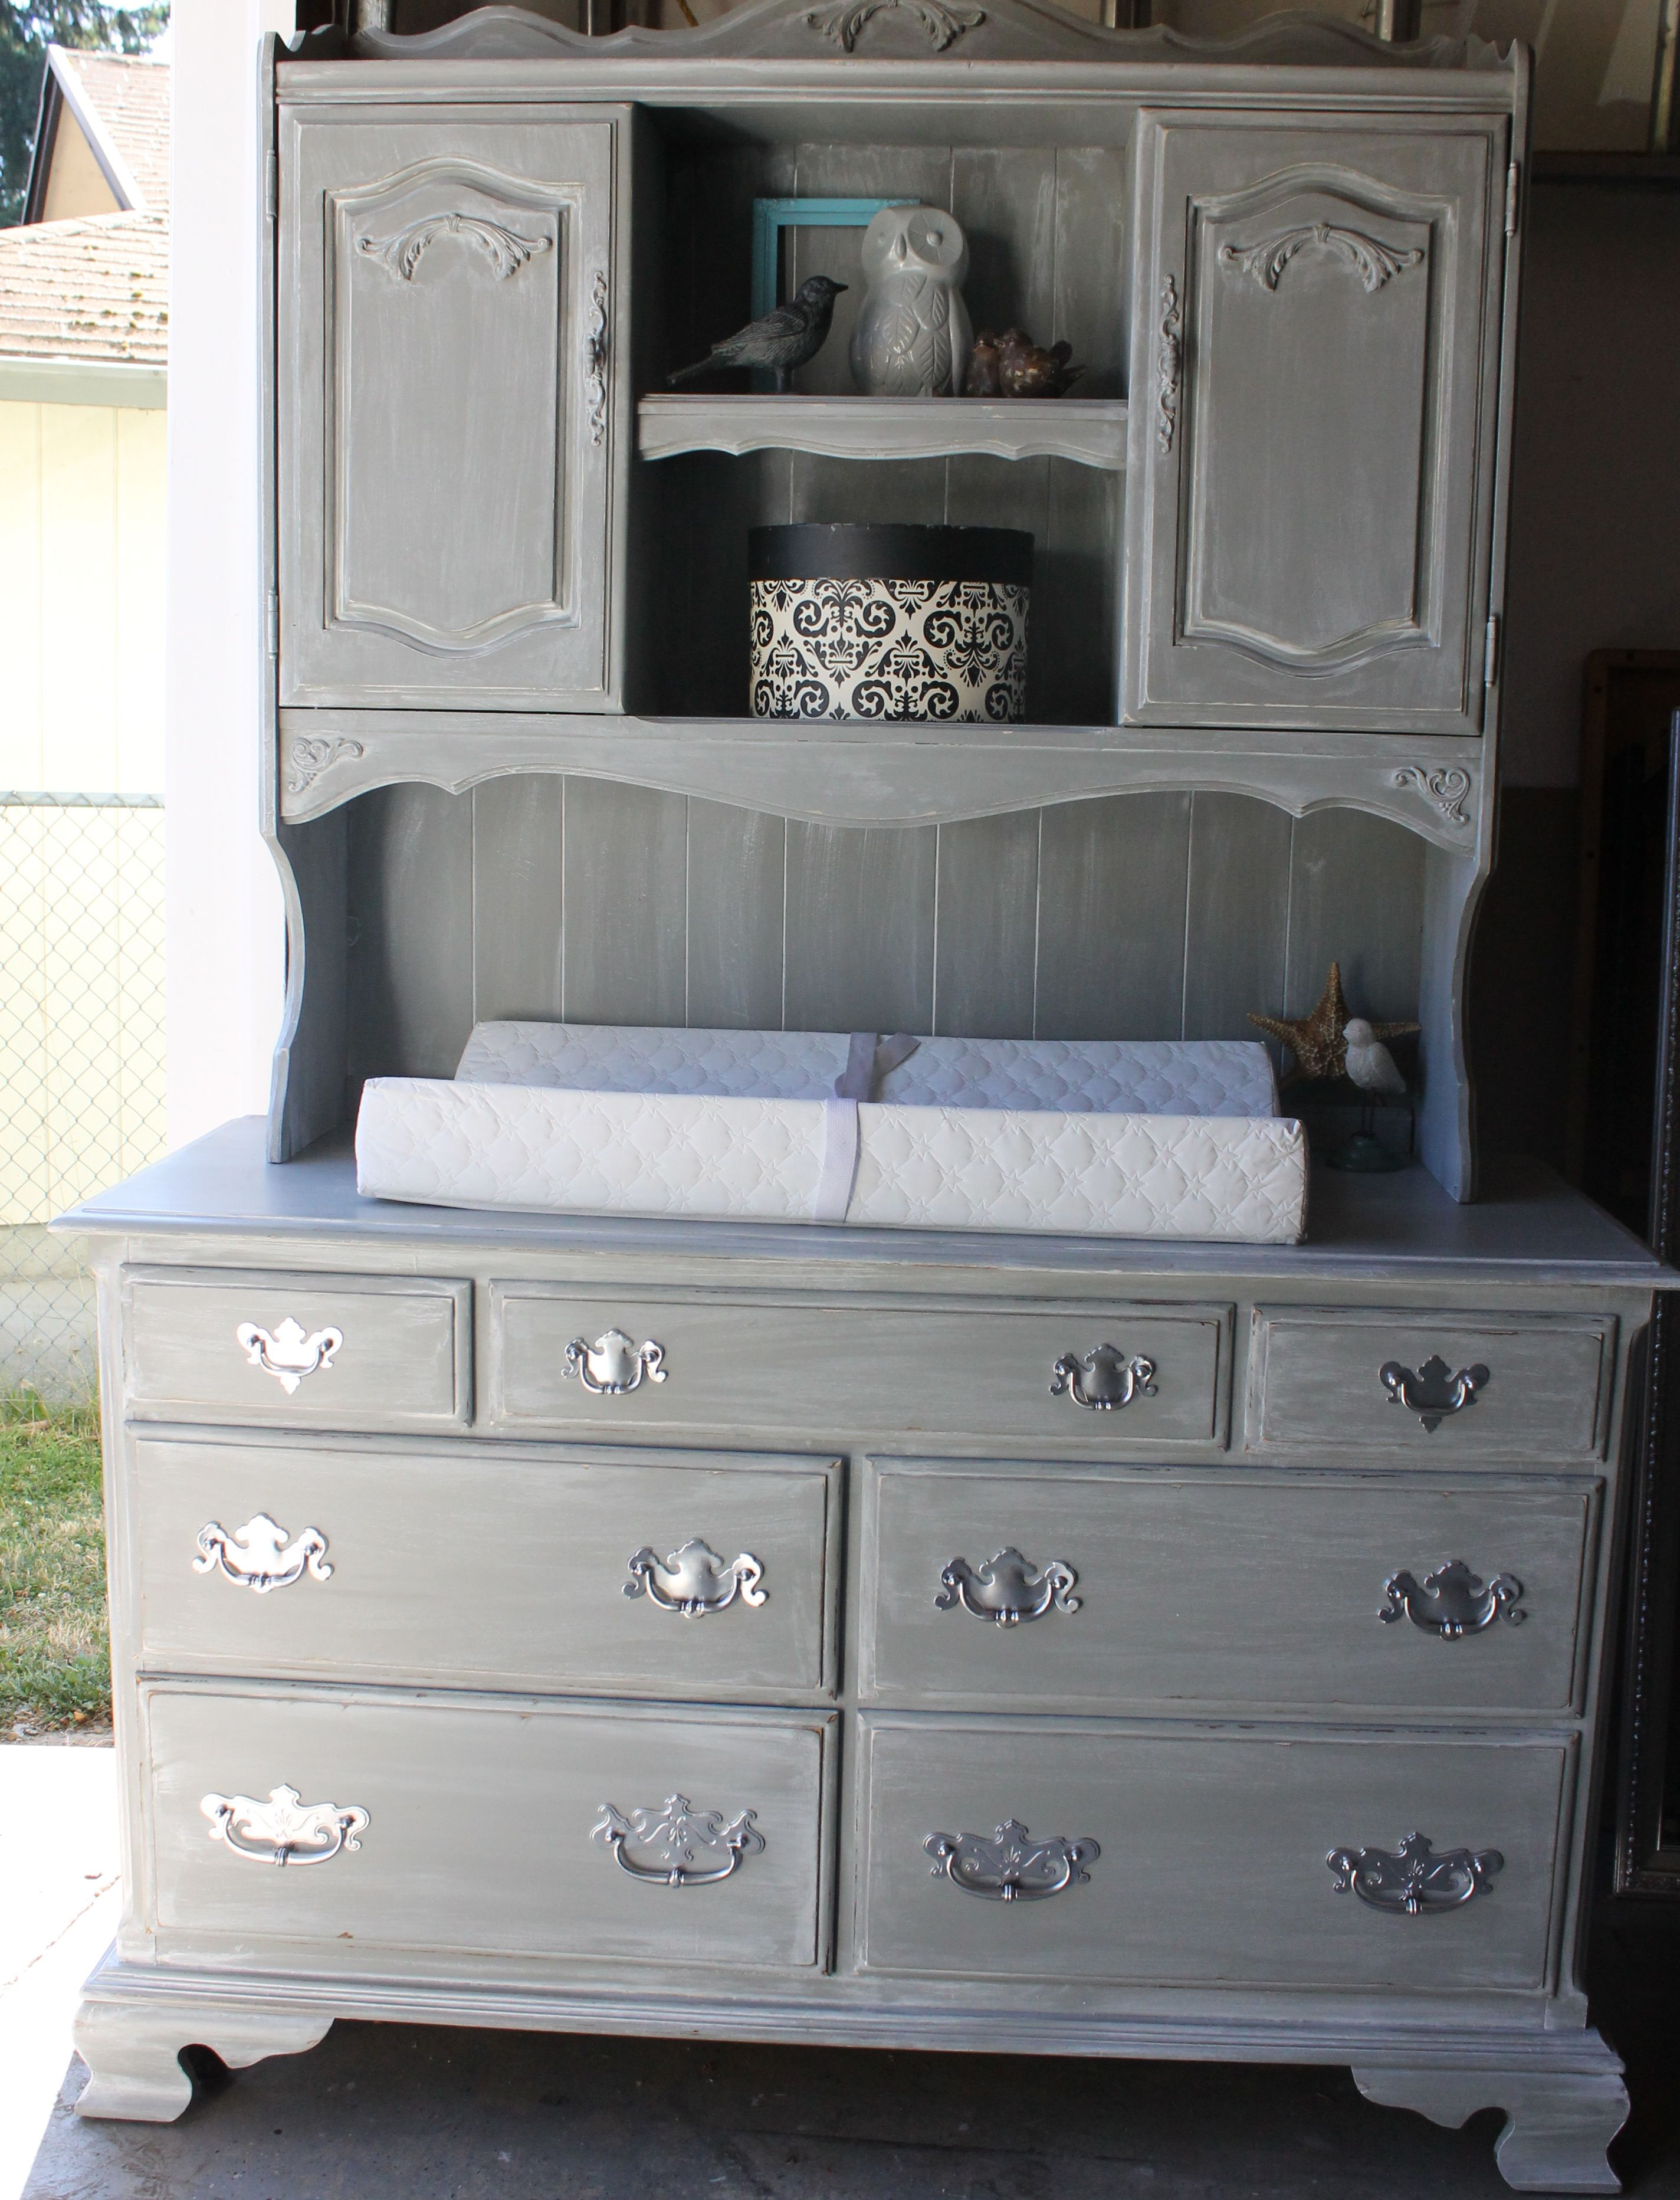 Vintage Ethan Allen Dresser Repurposed Into Weathered French